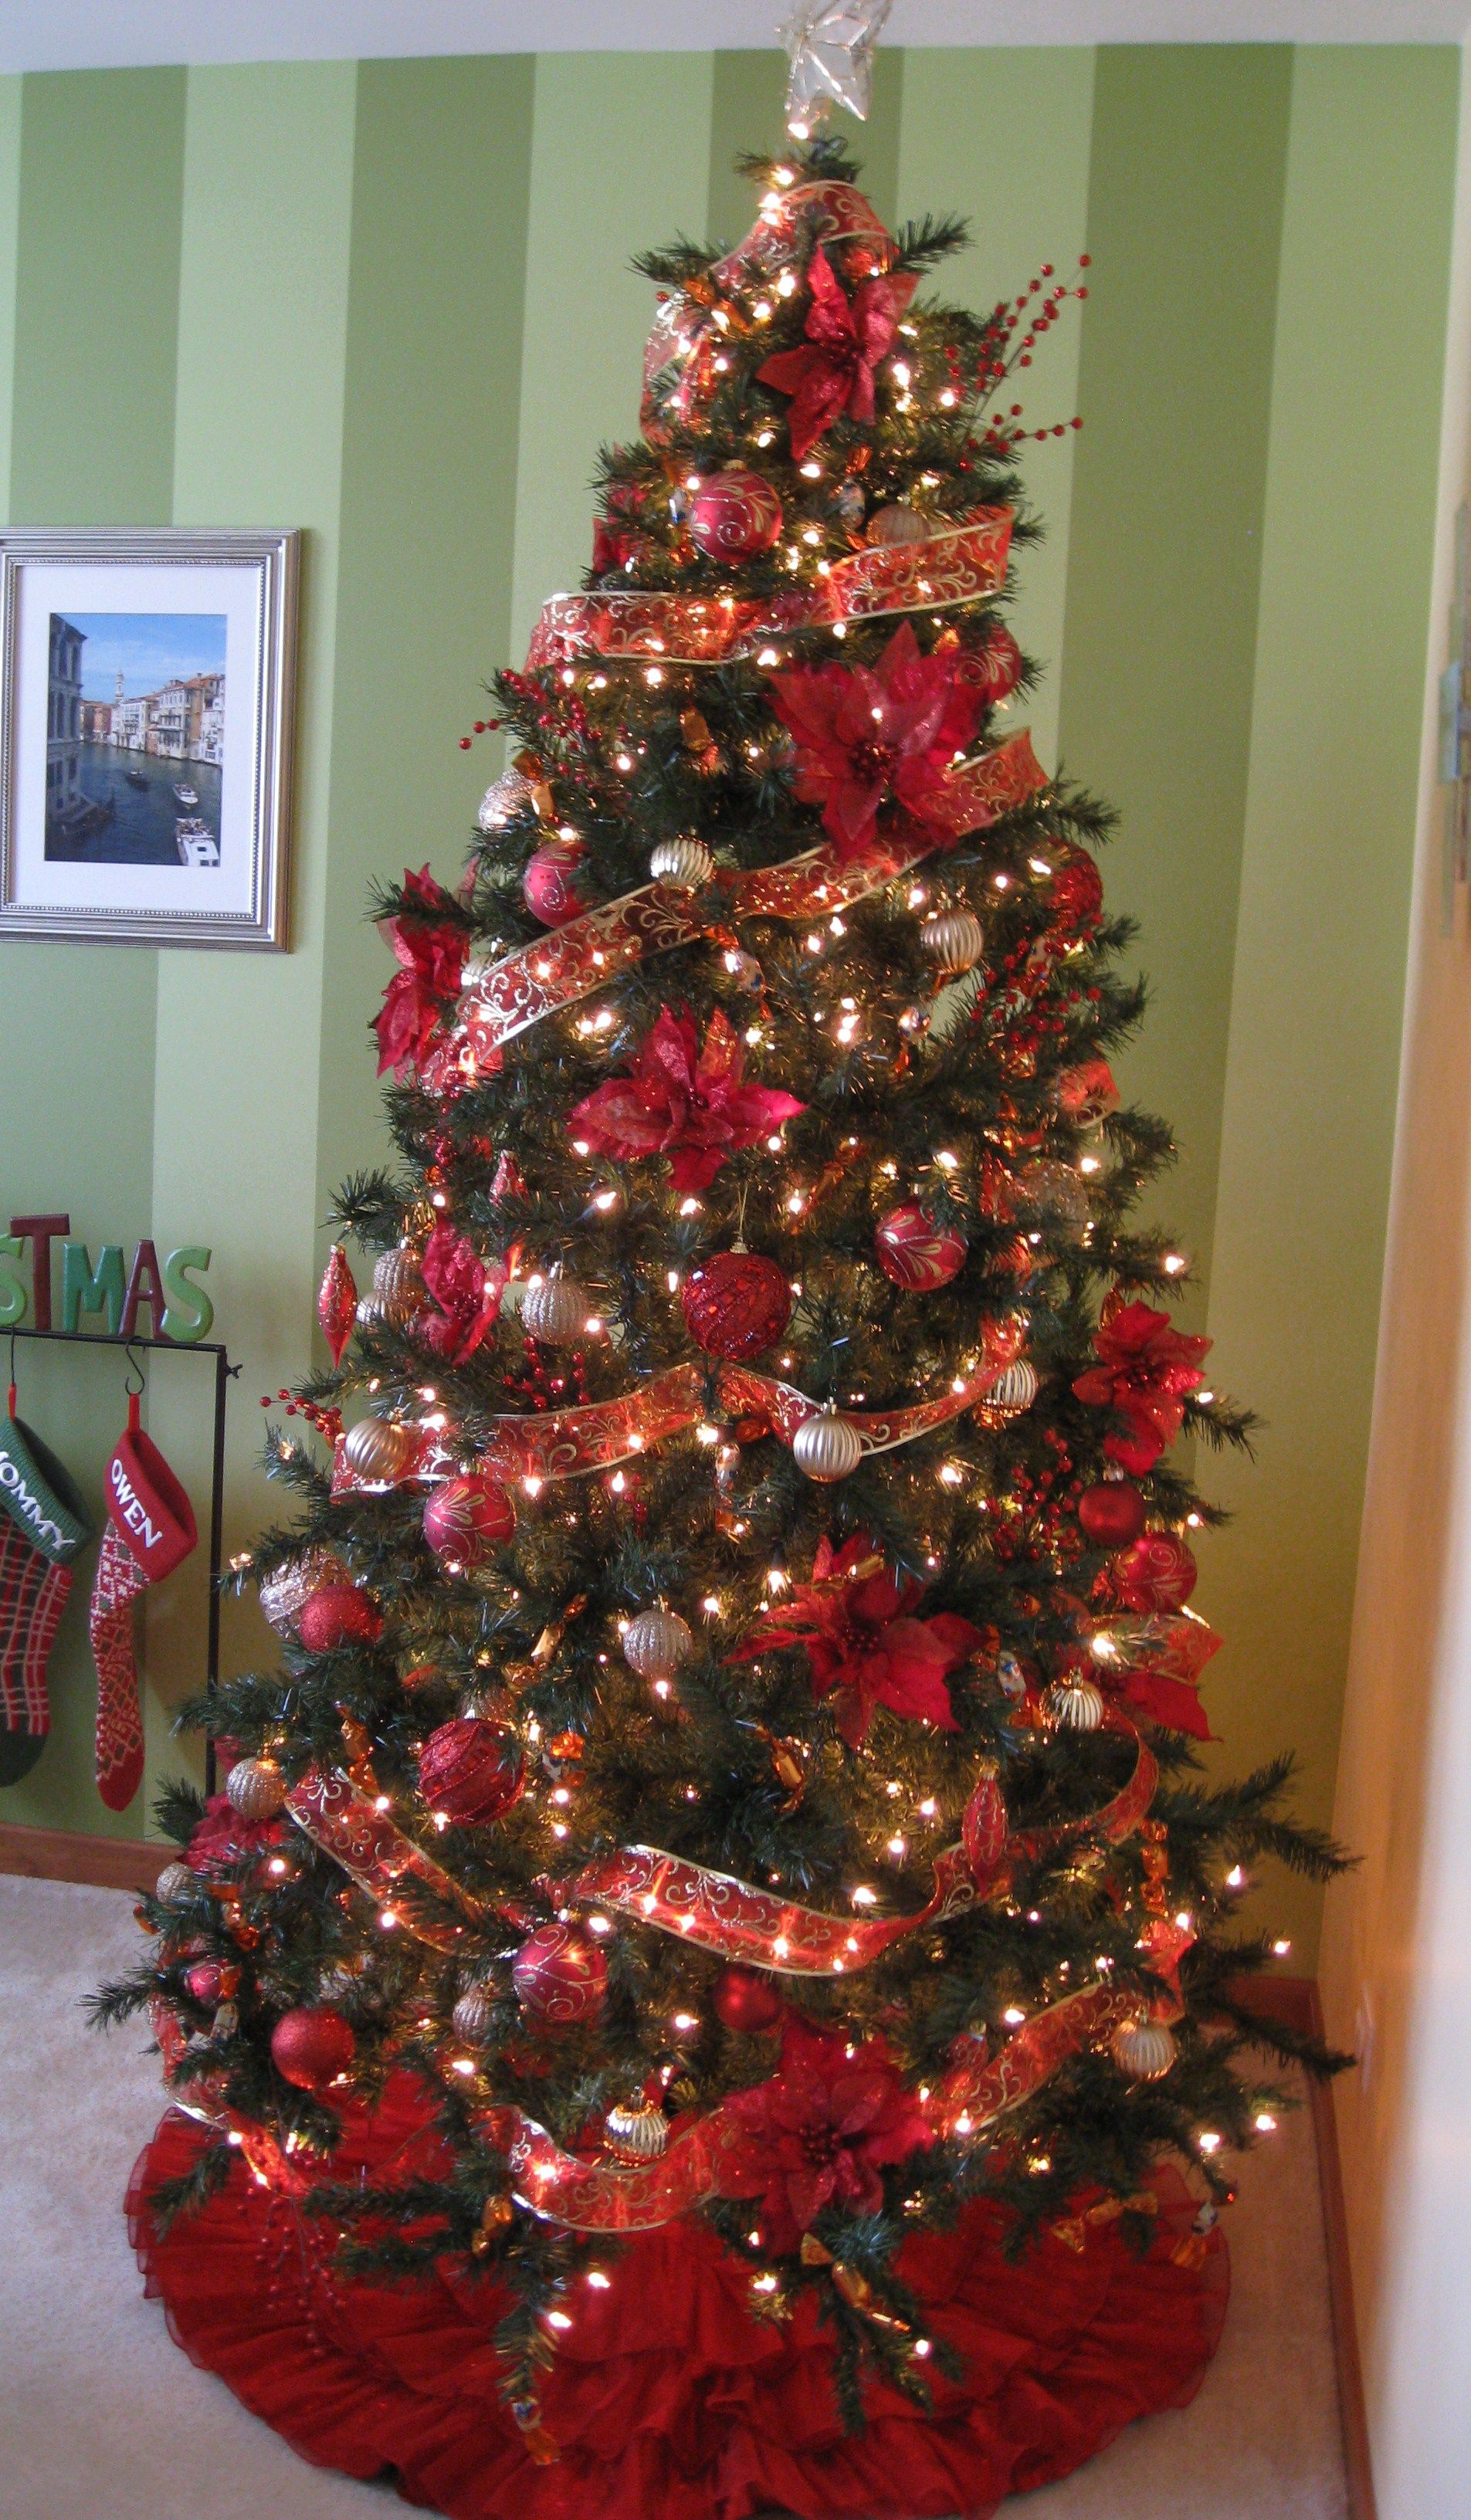 Color schemes for christmas trees - Christmas Tree Red And Gold Color Scheme Christmas Tree